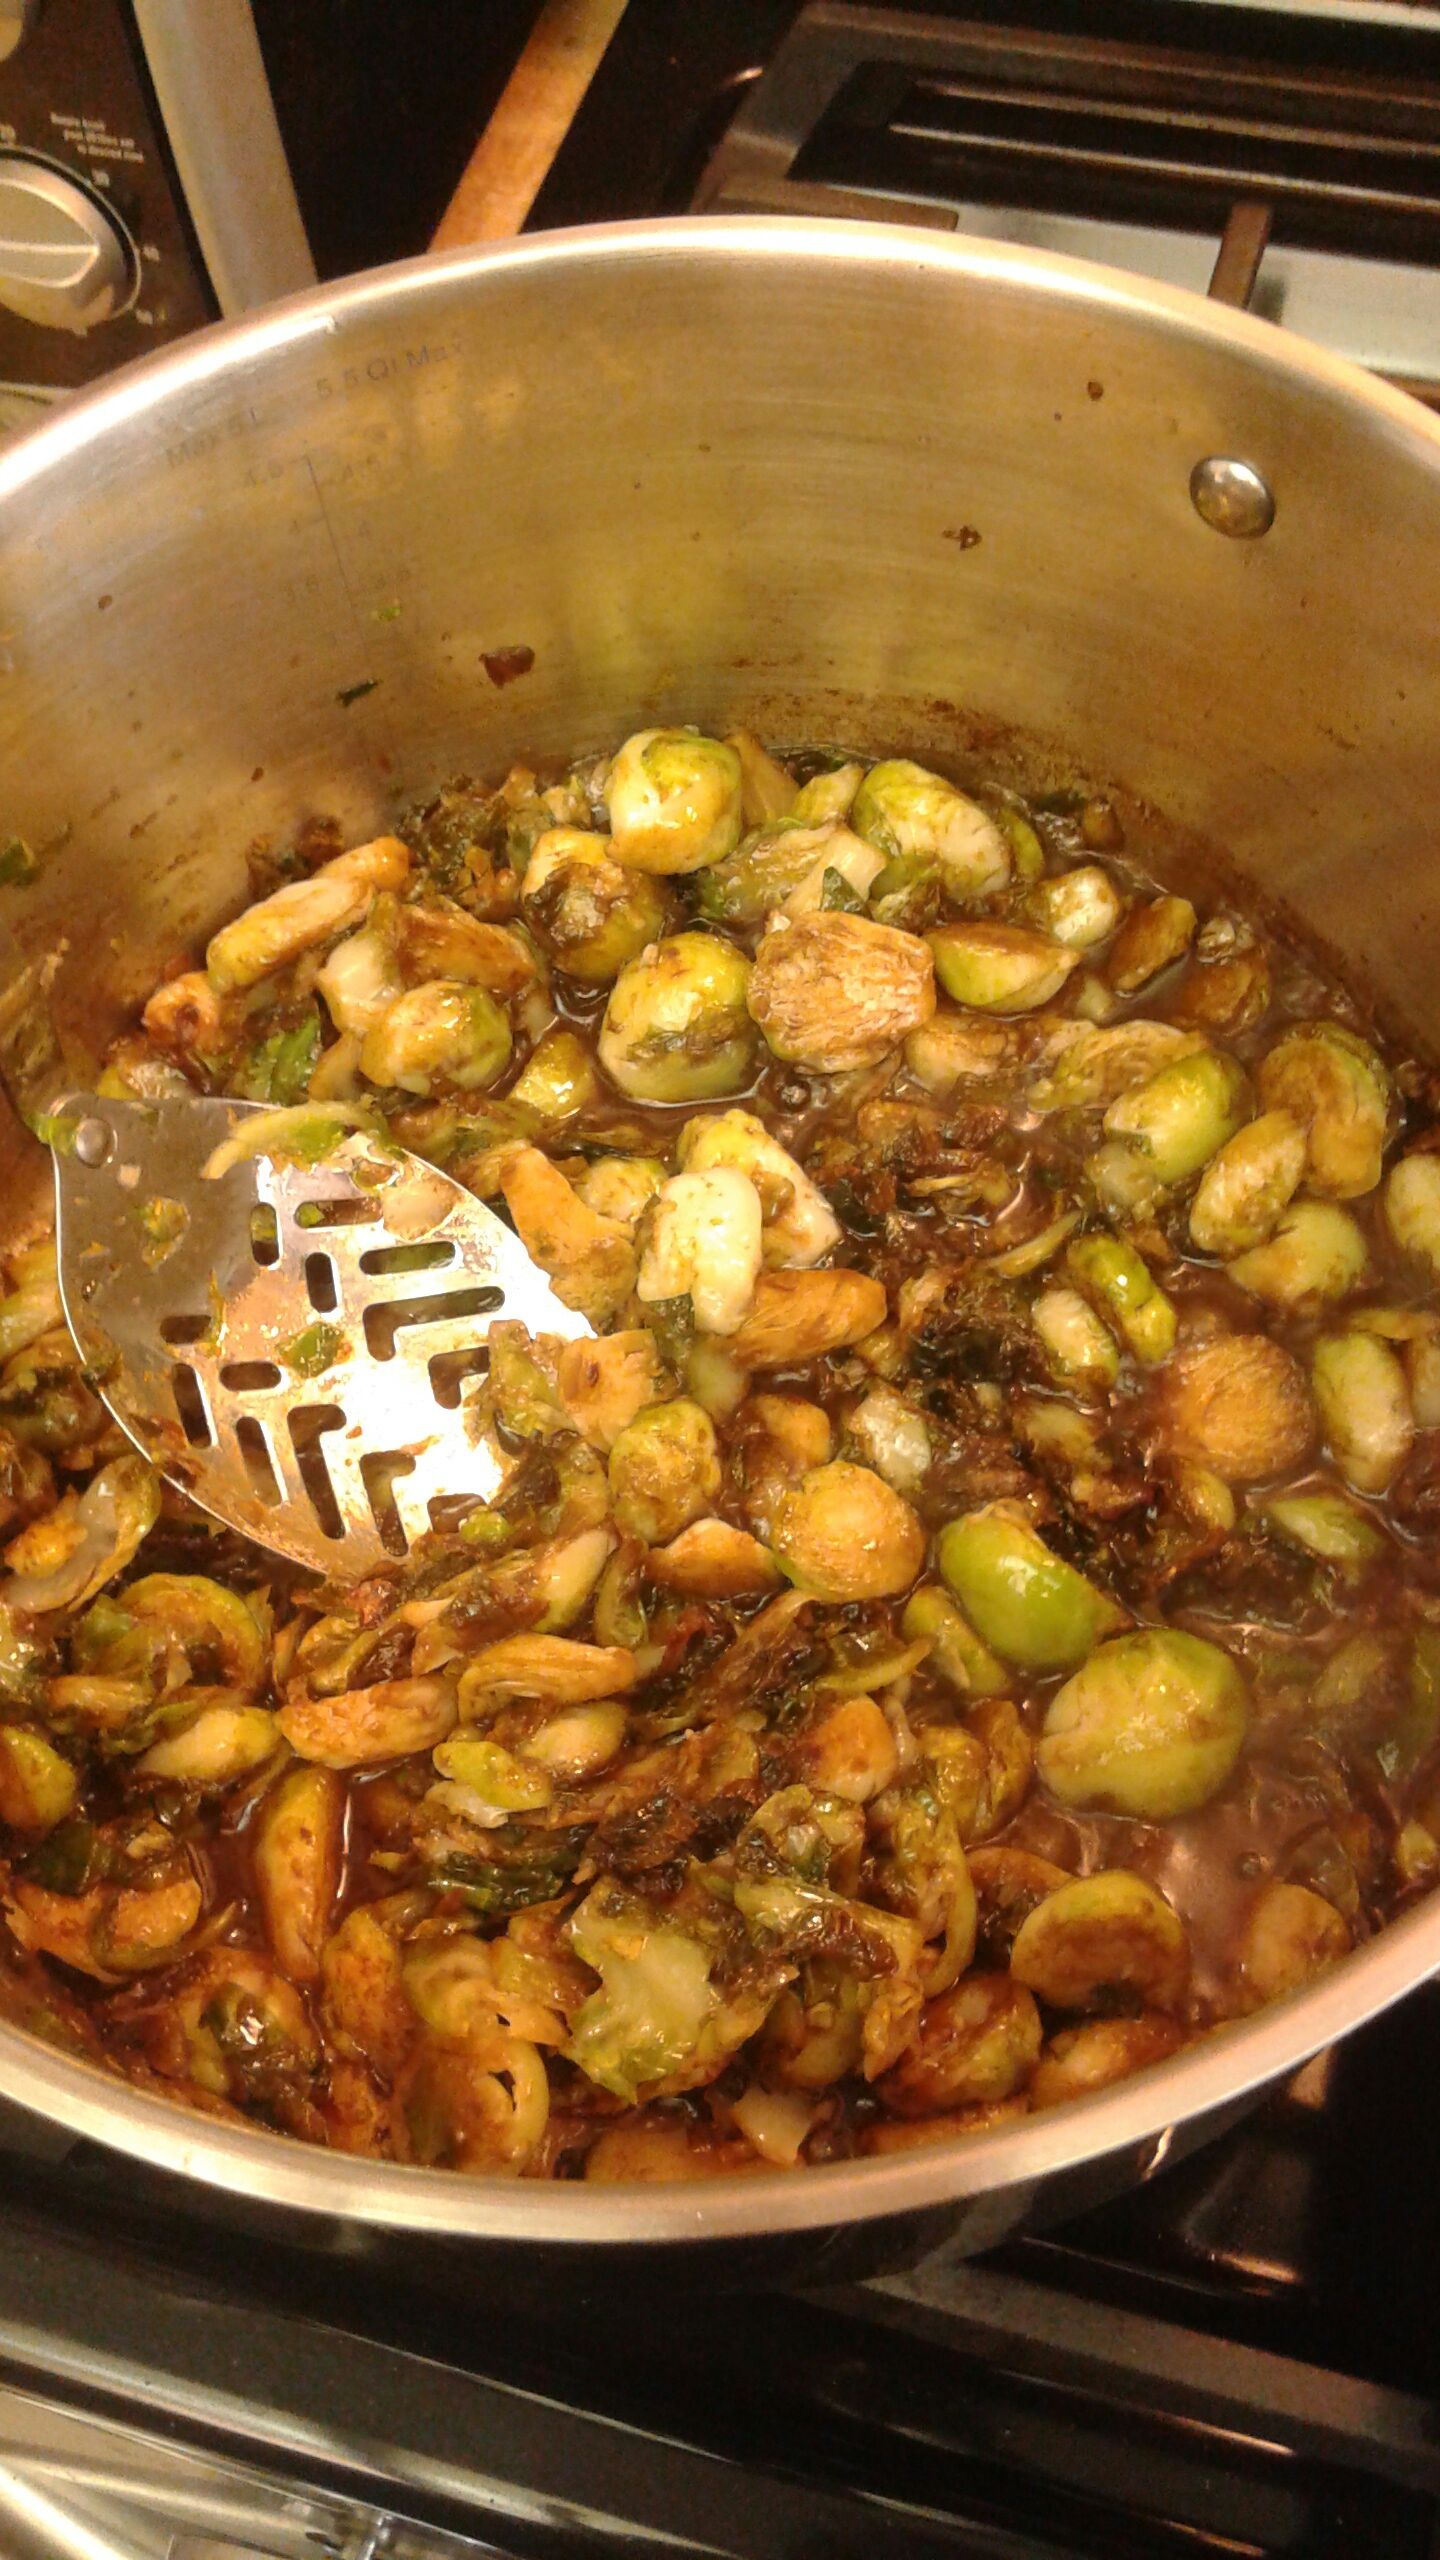 Picture of Cooking the Sprouts